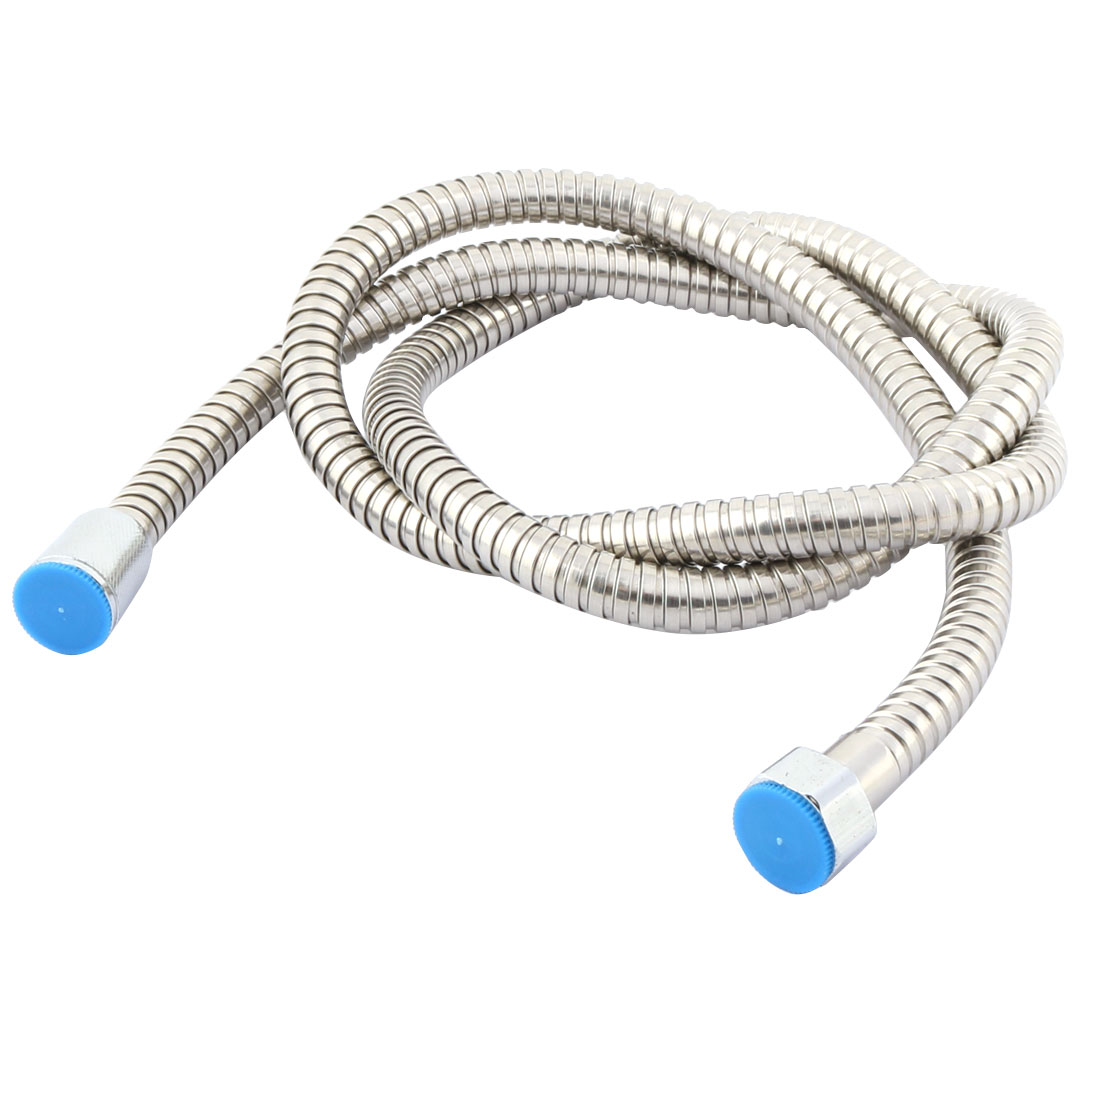 Unique Bargains Hotel Bathroom Stainless Steel Bath Tools Shower Hose Pipe Tube Silver Tone 1.5M